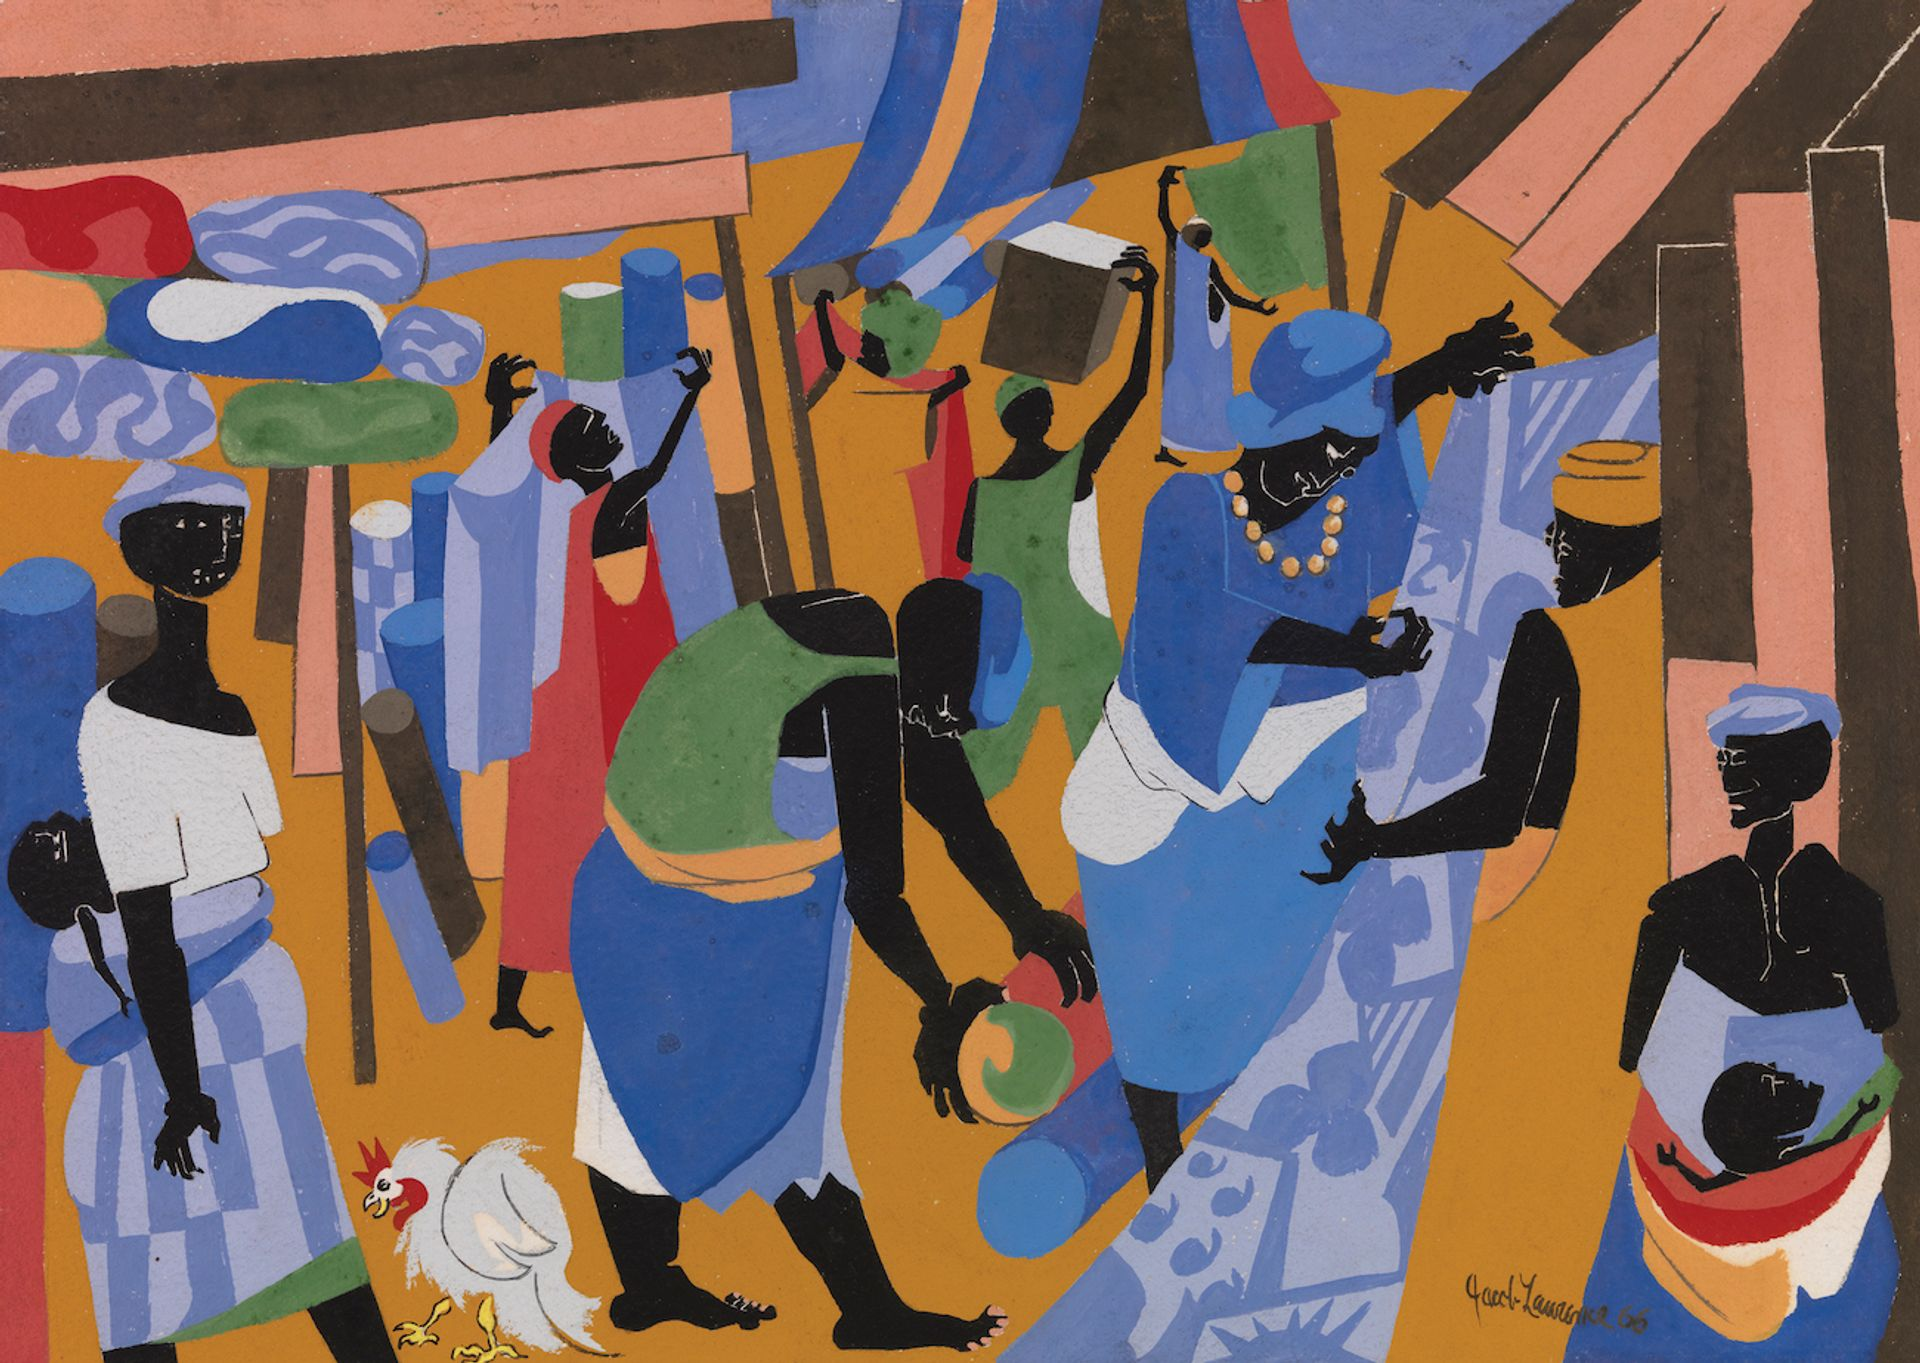 Jacob Lawrence, Market Scene (2021) The Jacob and Gwendolyn Knight Lawrence Foundation, Seattle / Artists Rights Society (ARS) New York